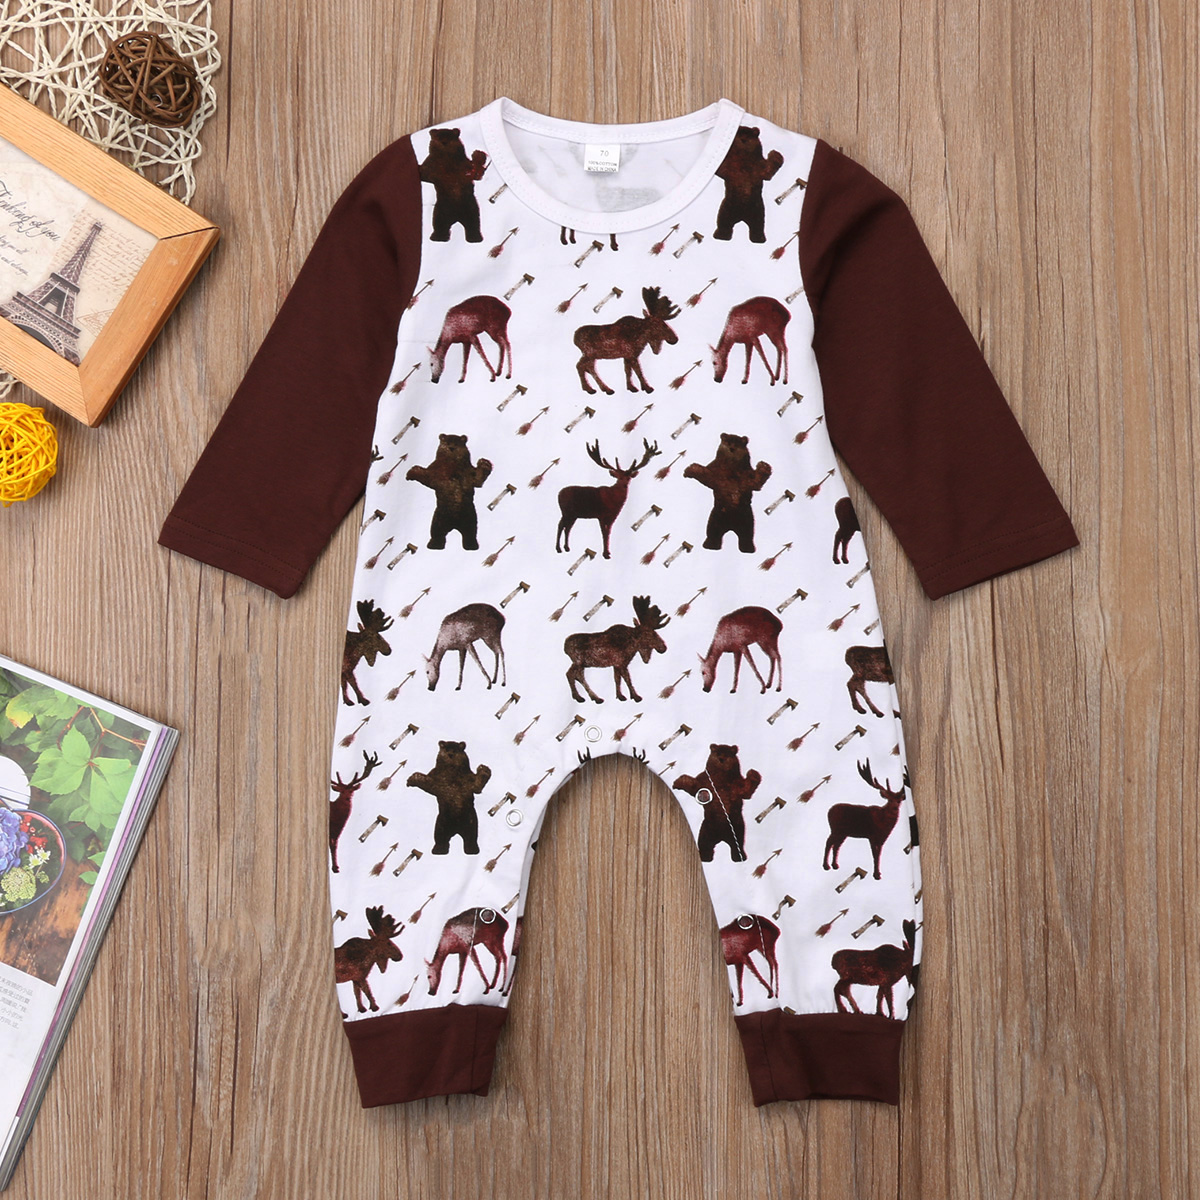 Cartoon Horse Newborn Infant Kids Baby Girl Boy Outfits Romper Jumpsuit Long Sleeve Cotton Xmas Clothes